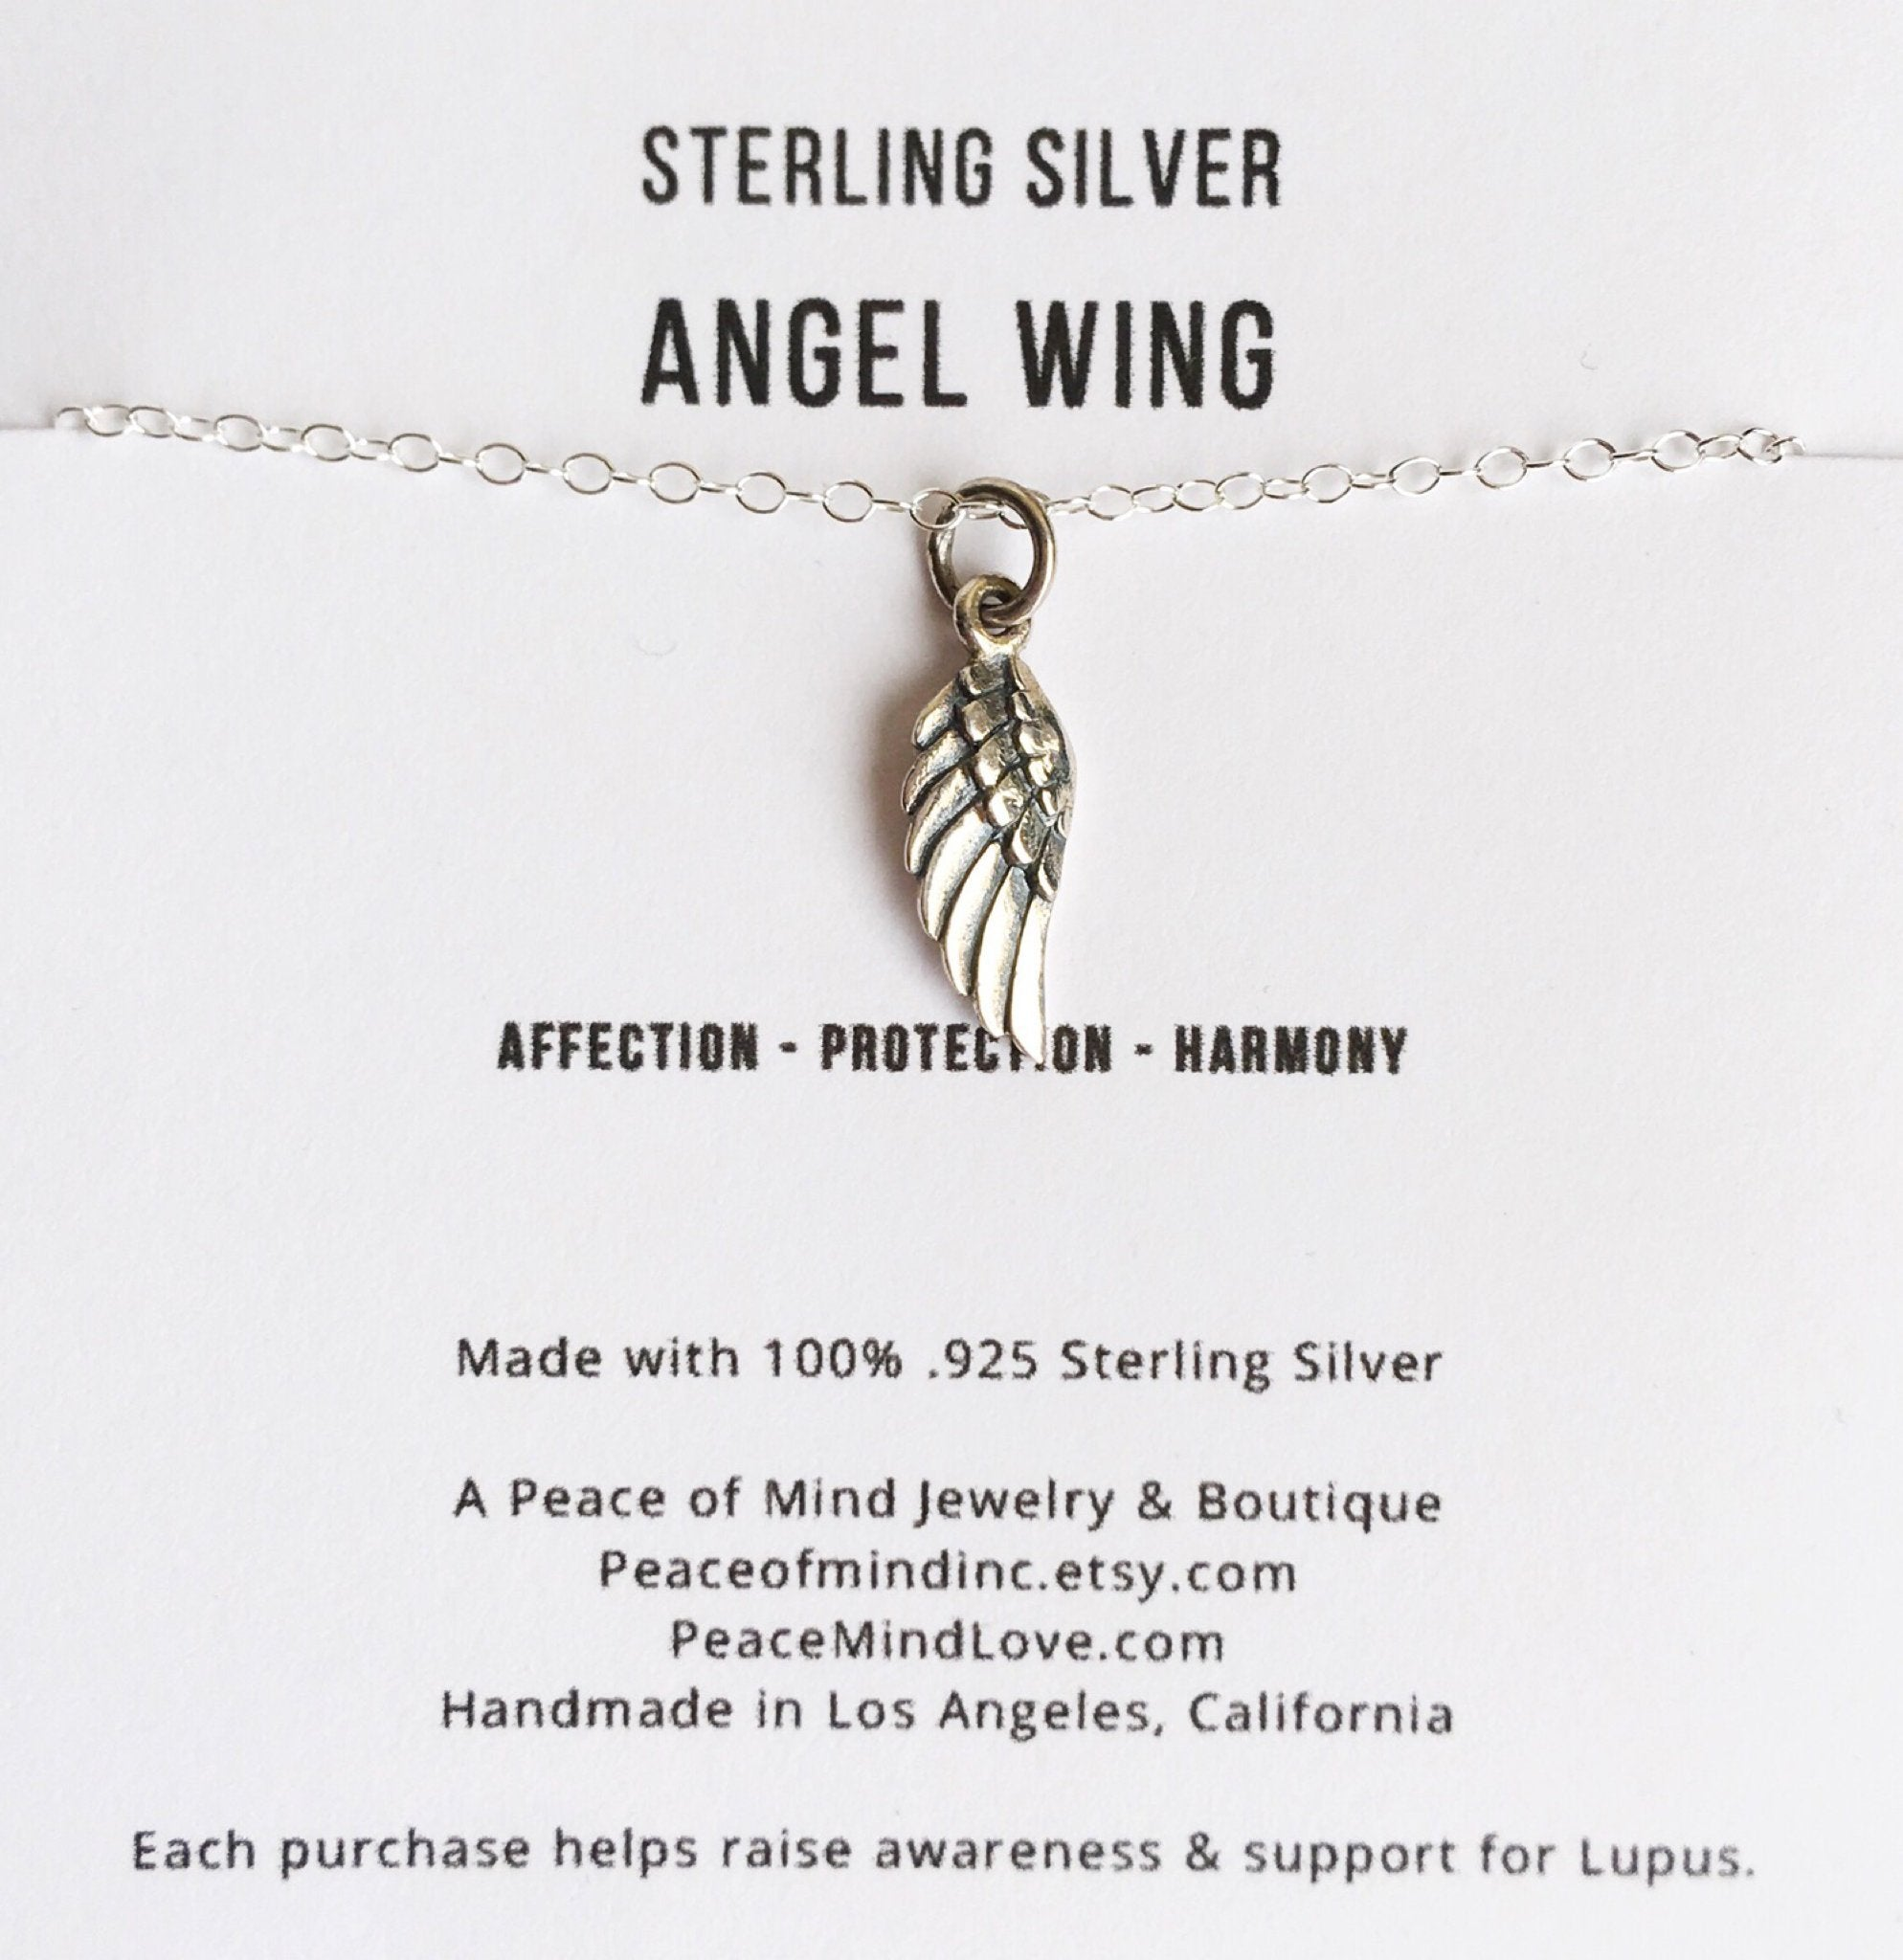 Protection & Harmony - Angel Wing Necklace